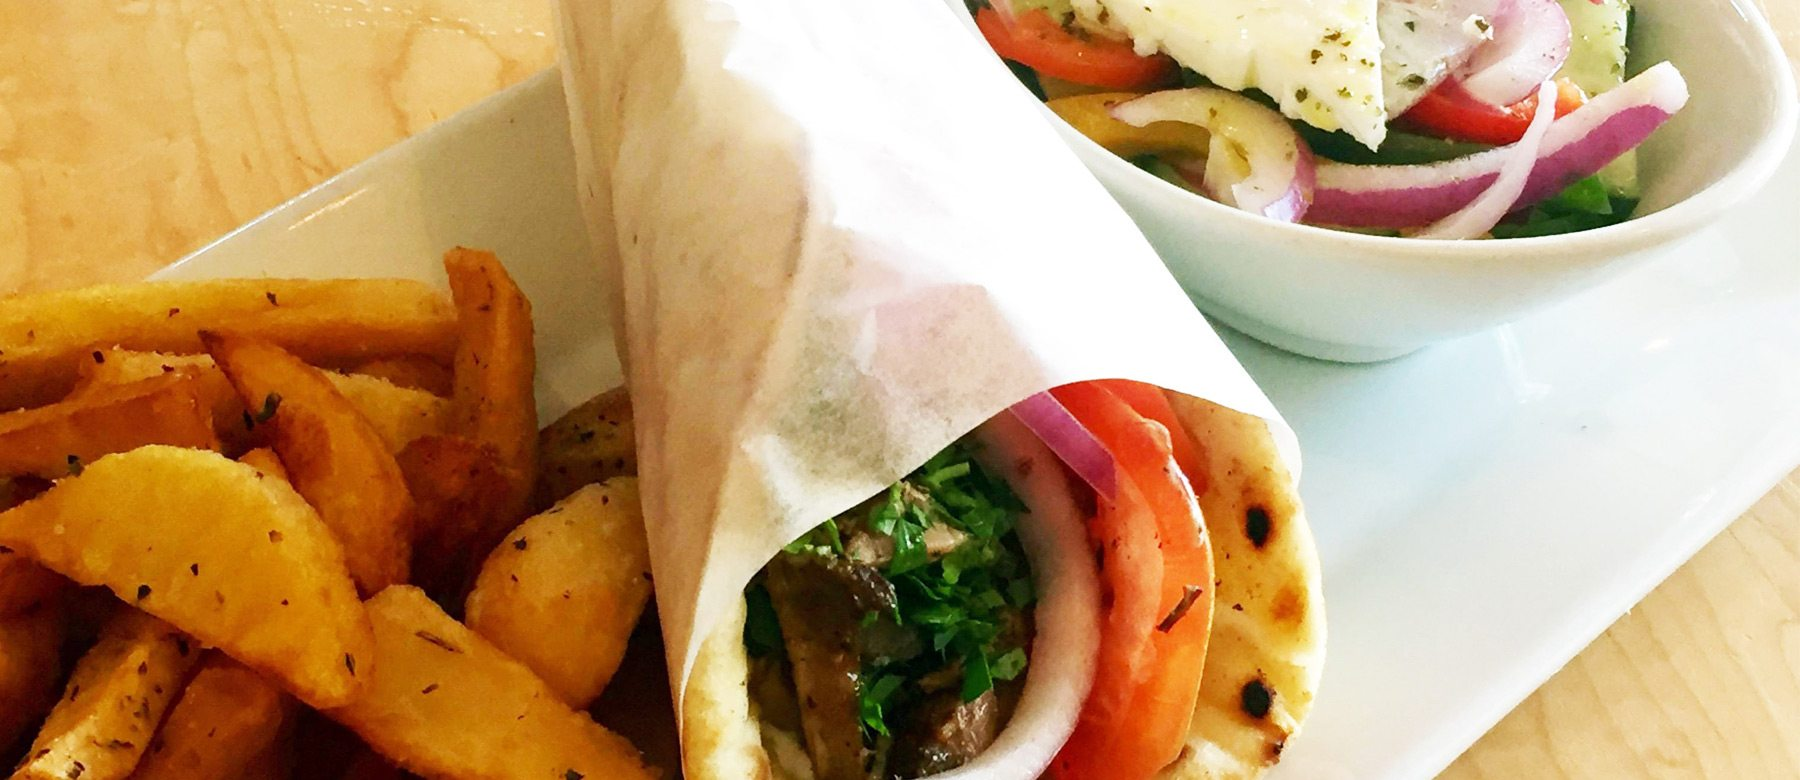 Get to the Greek: Gyros in Little Italy are filling, addictive, affordable